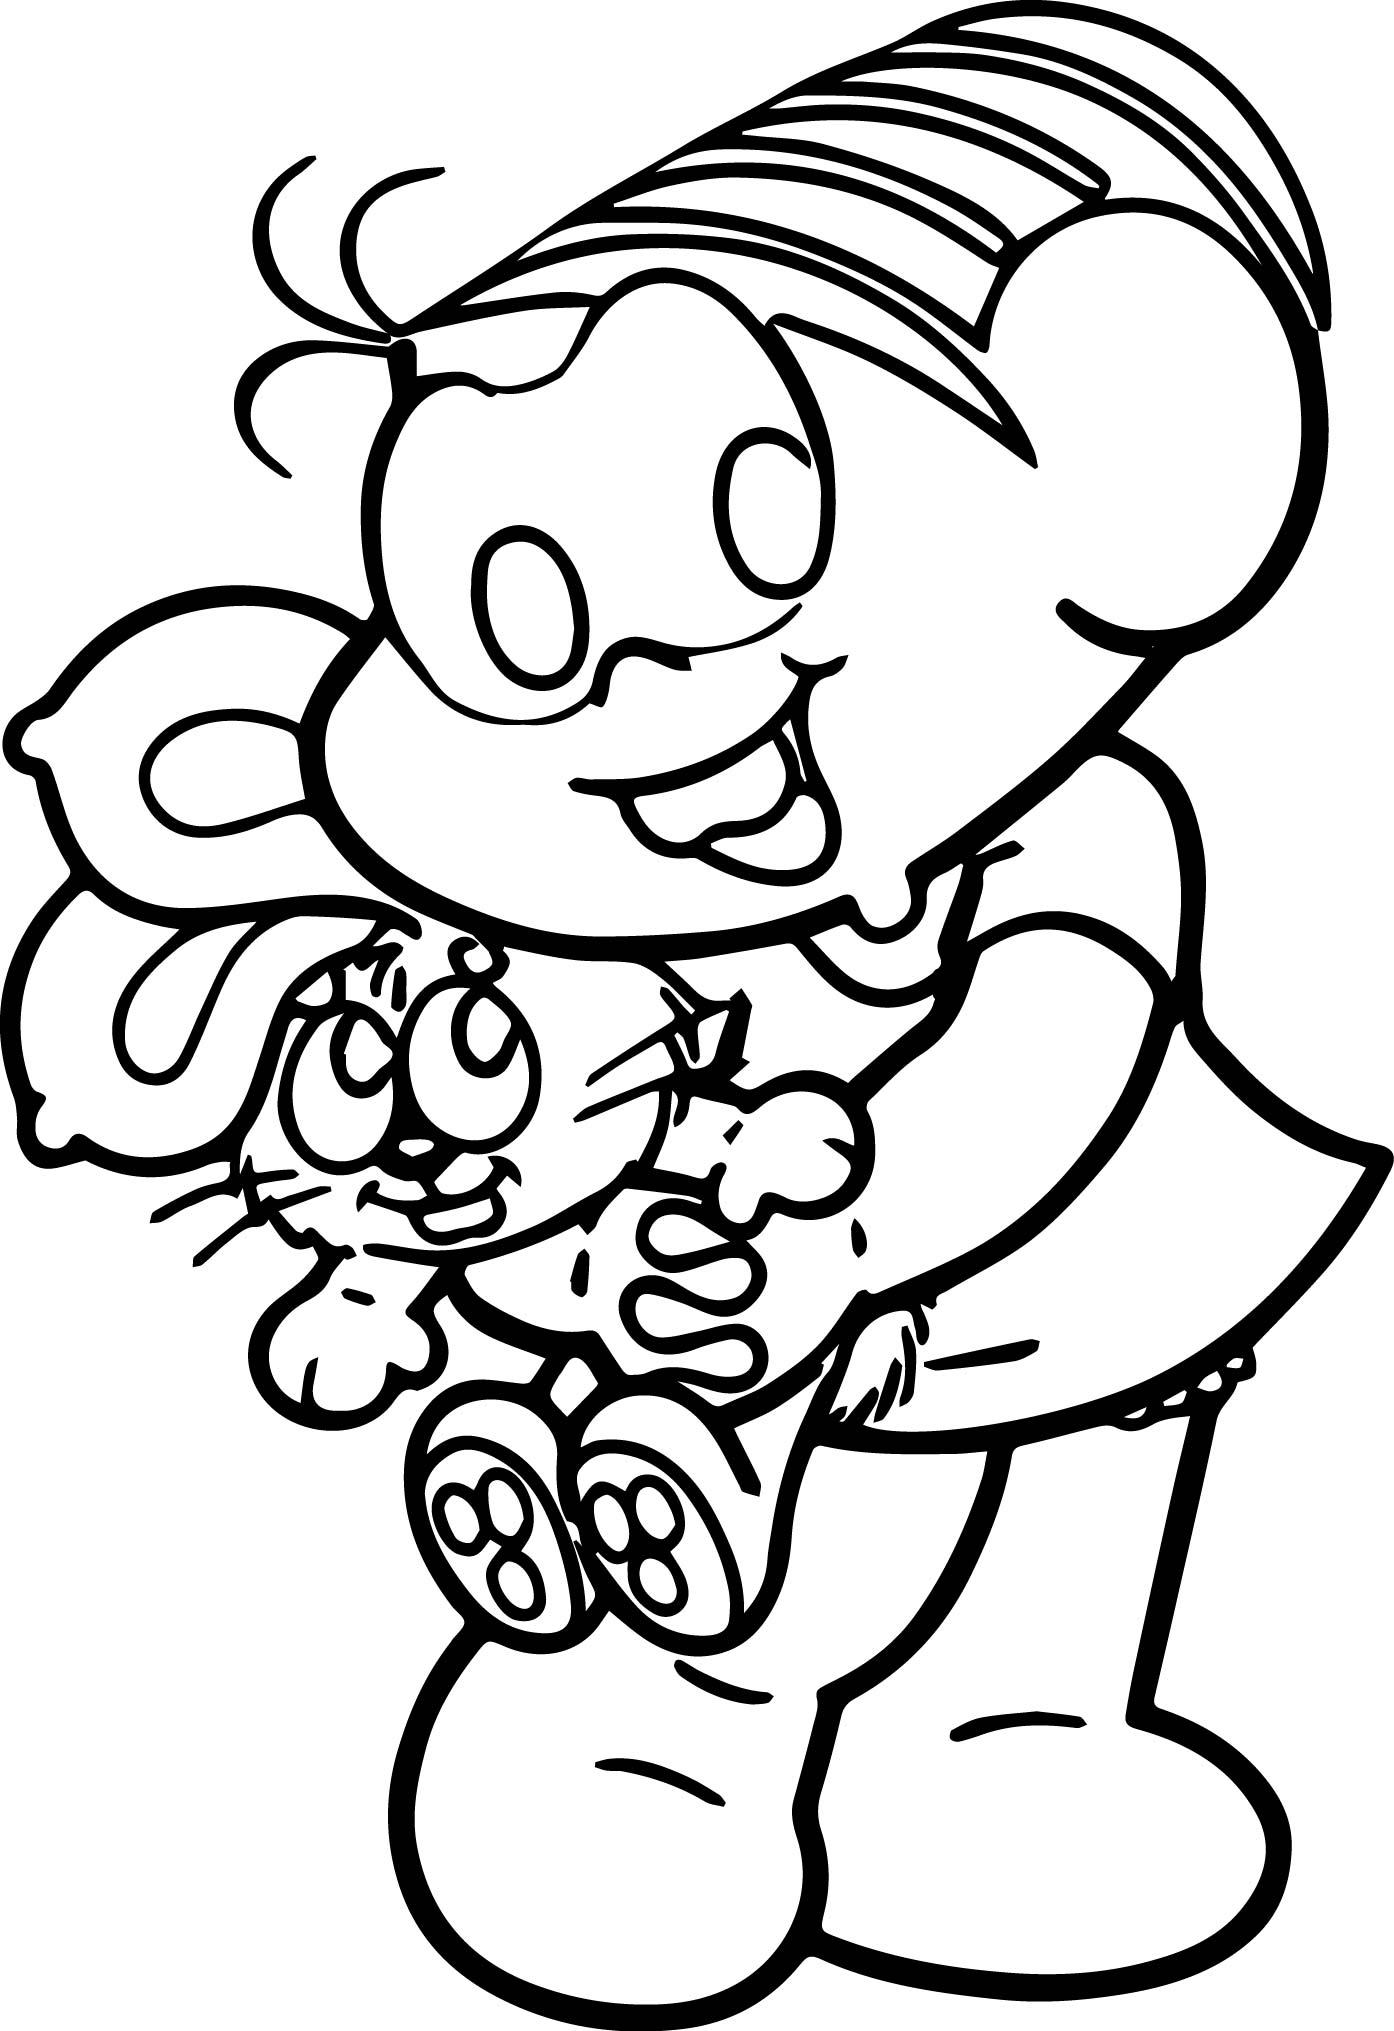 Monica Holding Toy Bunny Coloring Page